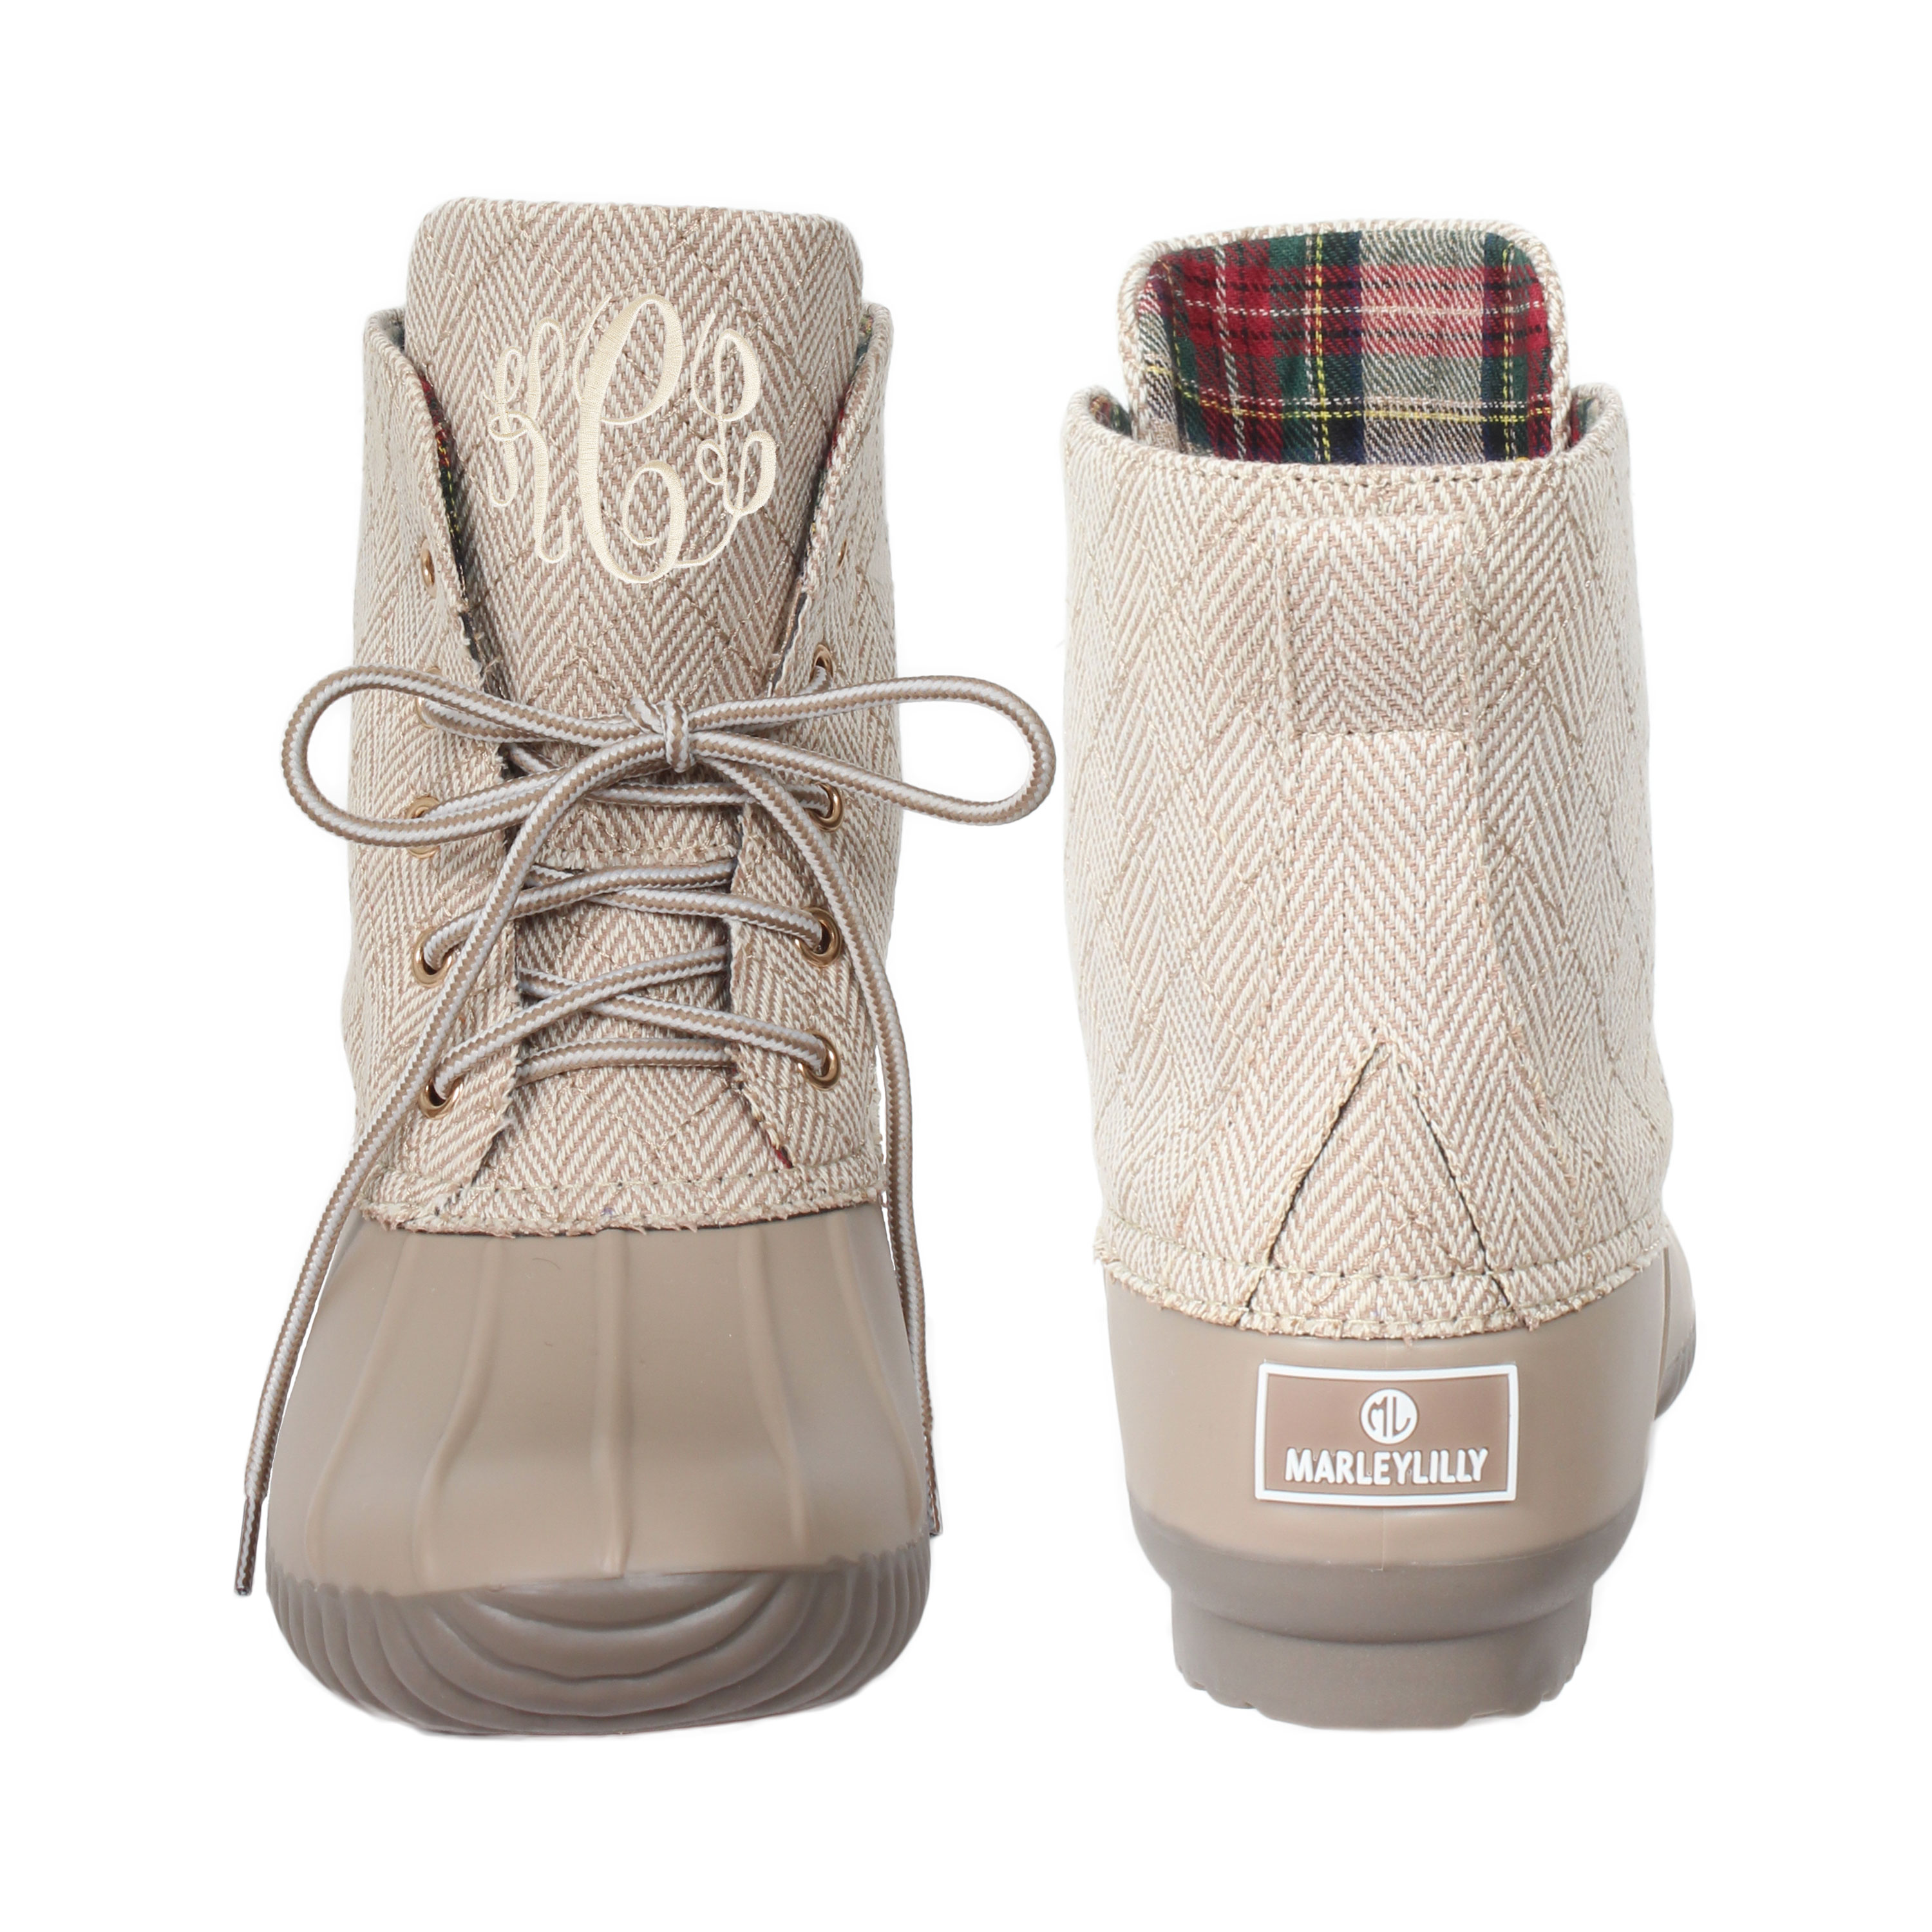 Unique Monogrammed Duck Boots | Marleylilly ZQ76